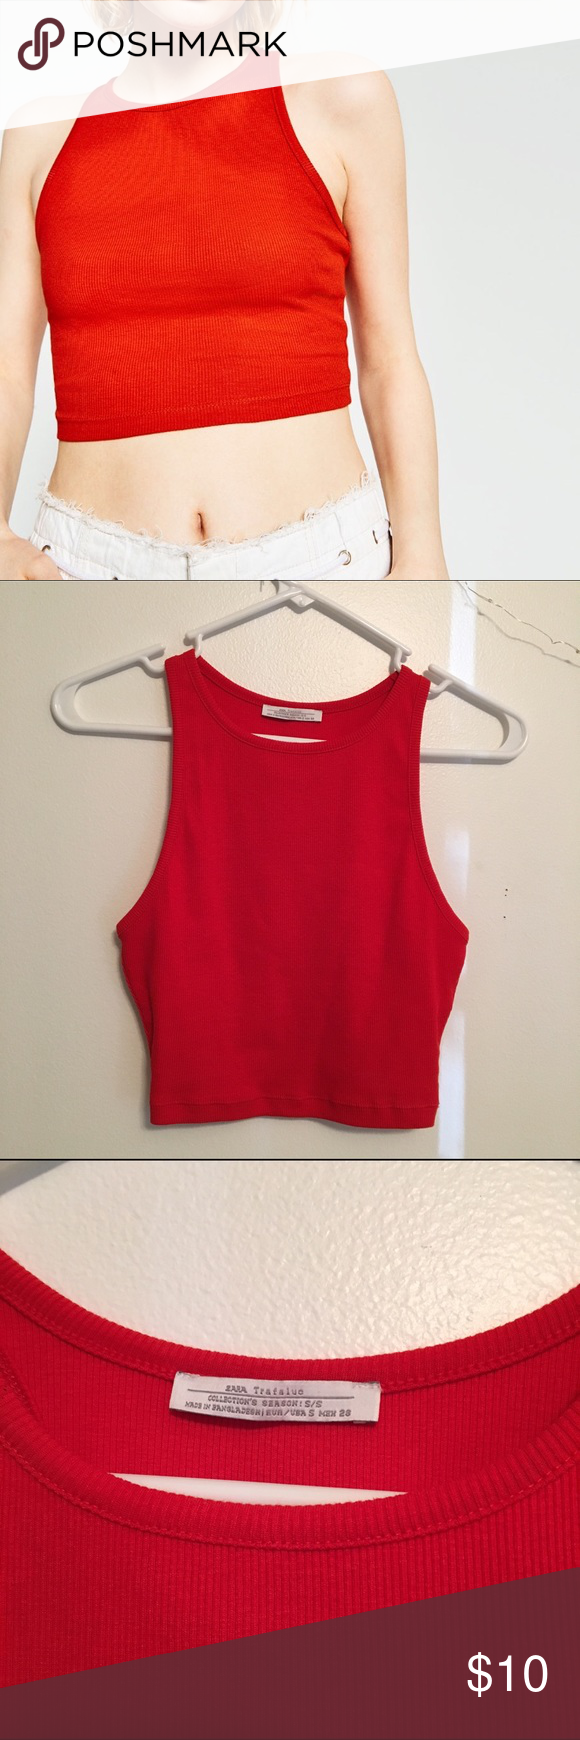 Zara Red Crop Top No trades! No modeling! Size small. Fits true to size. Never worn, no flaws. Cropped fit. Zara Tops Crop Tops